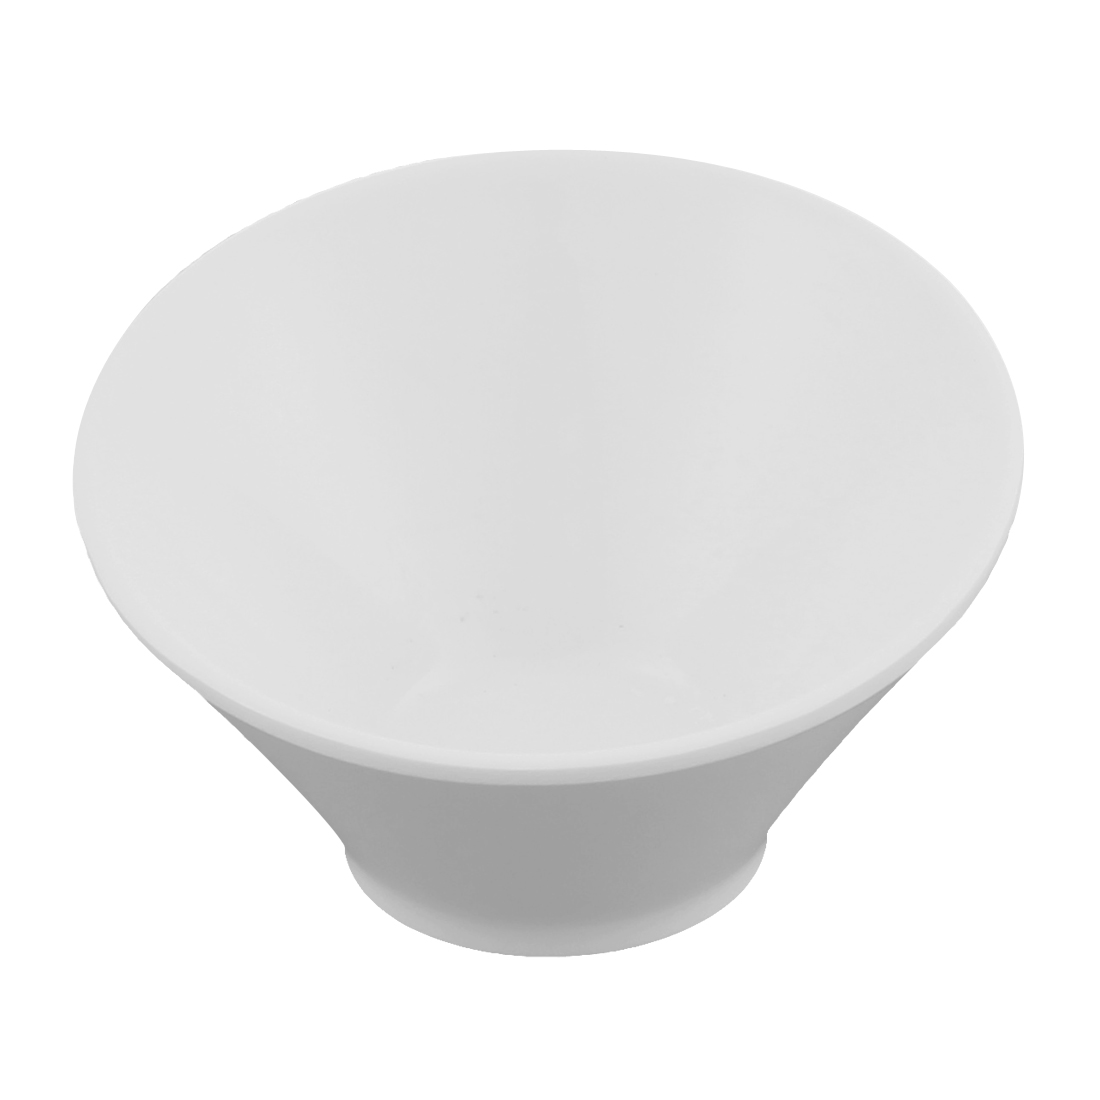 Home Restaurant Tall Slant Bowl Soy Sauce Dish White